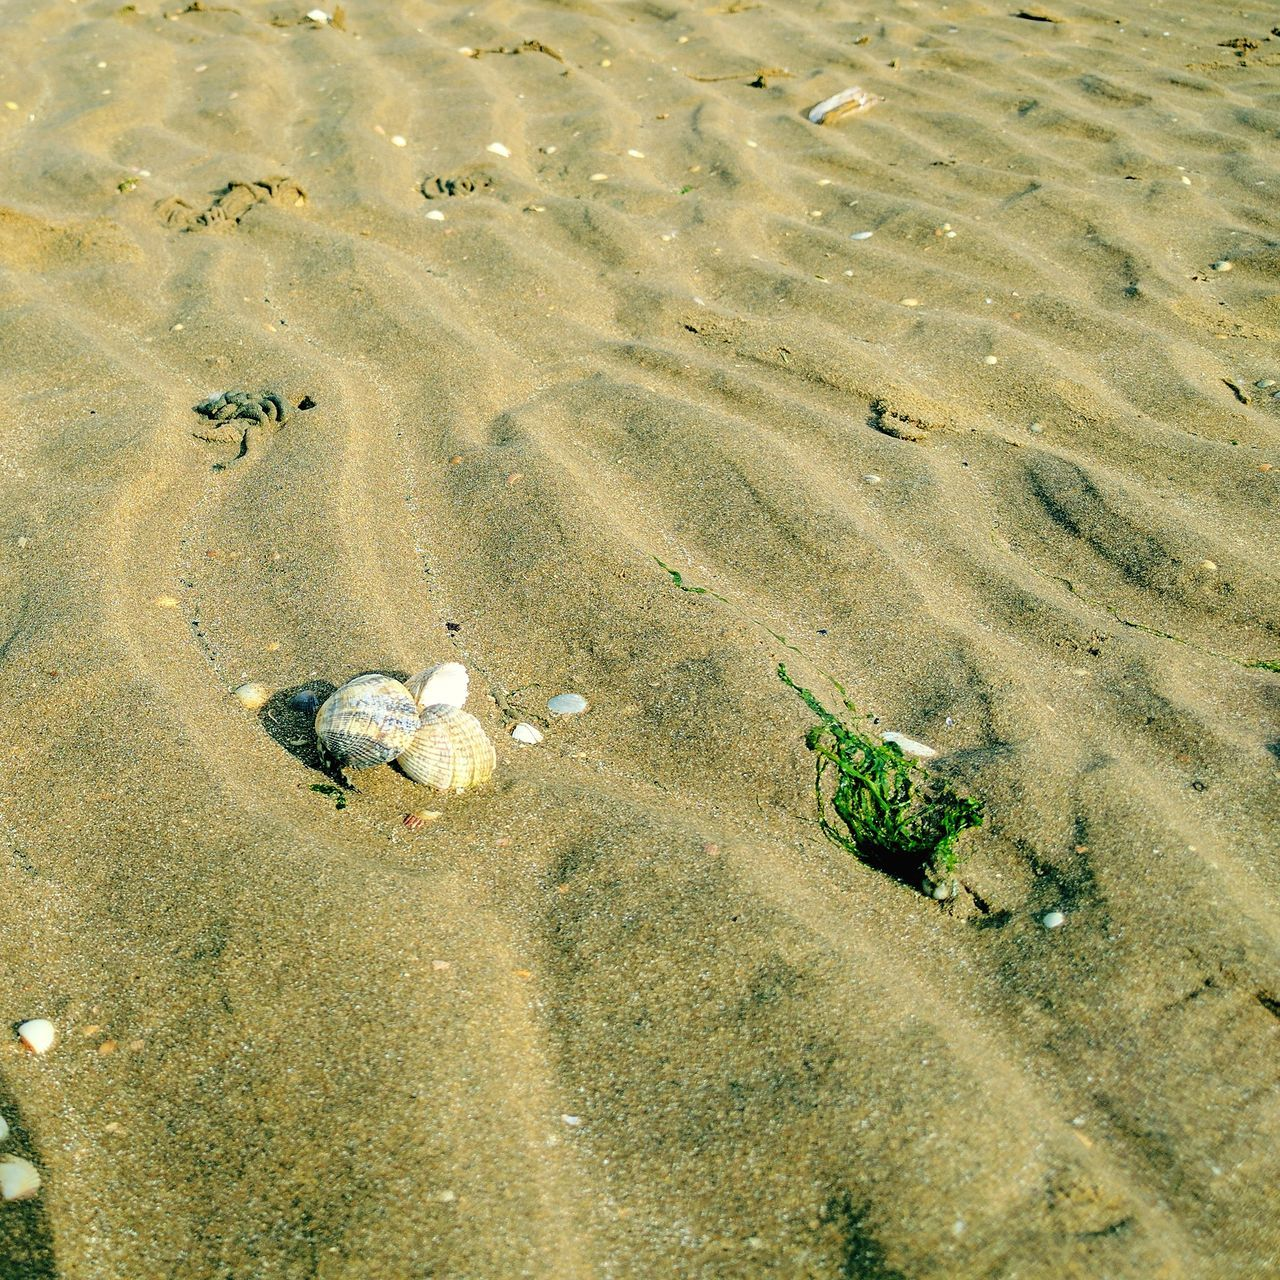 Shell Trio Beach Sand High Angle View Backgrounds Outdoors Nature Day Pattern No People Sea Water Beauty In Nature Sand Dune Shells Seaweed British Beaches